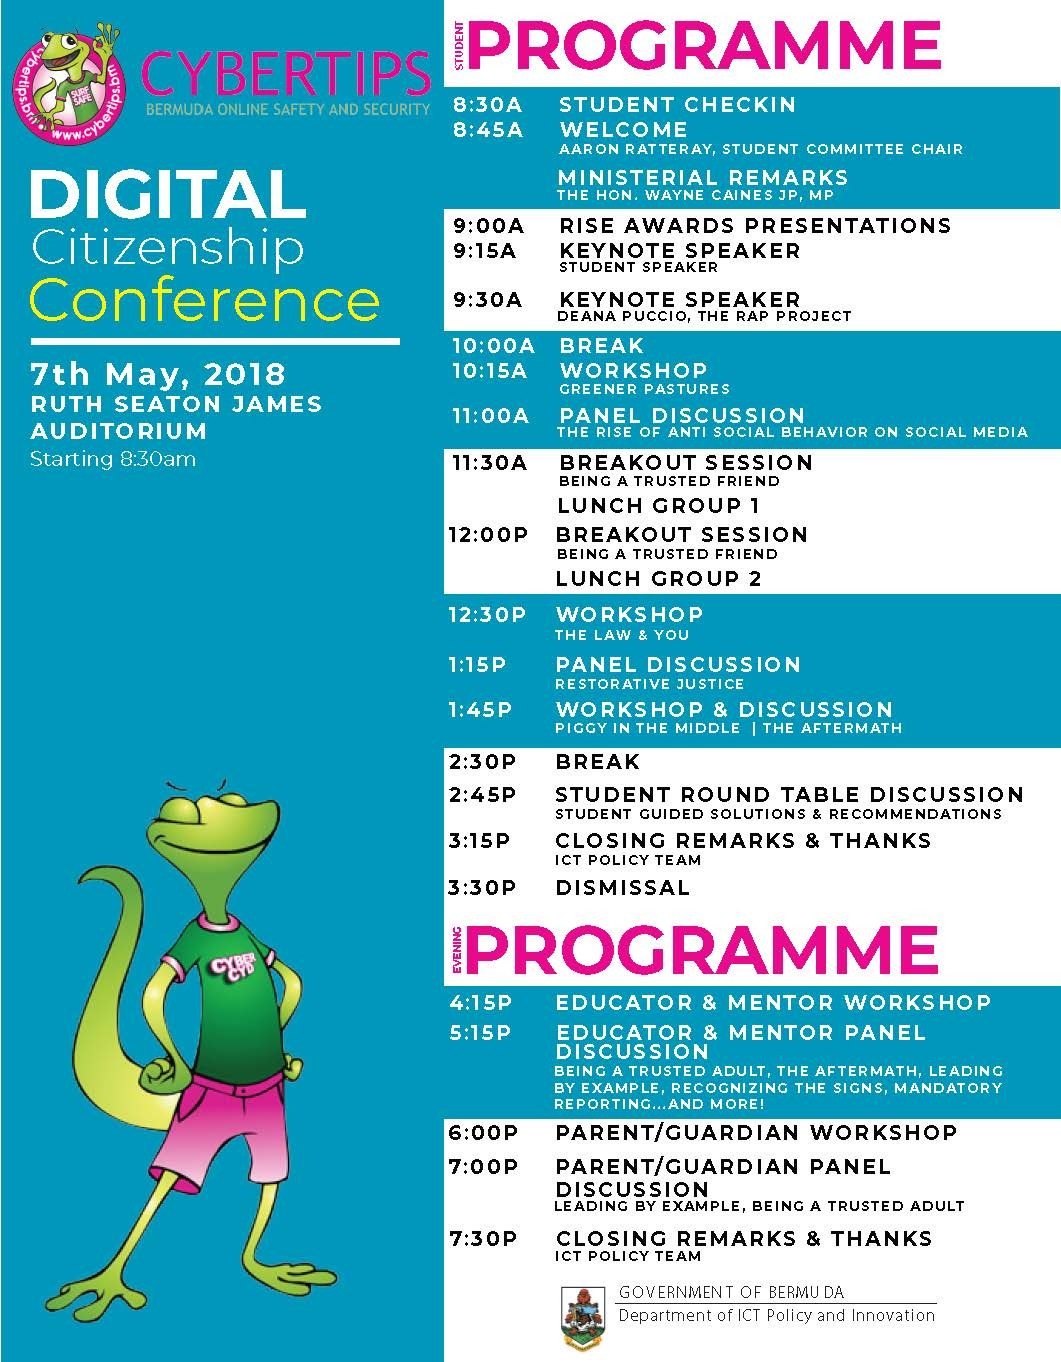 Digital Citizenship Conference Programme